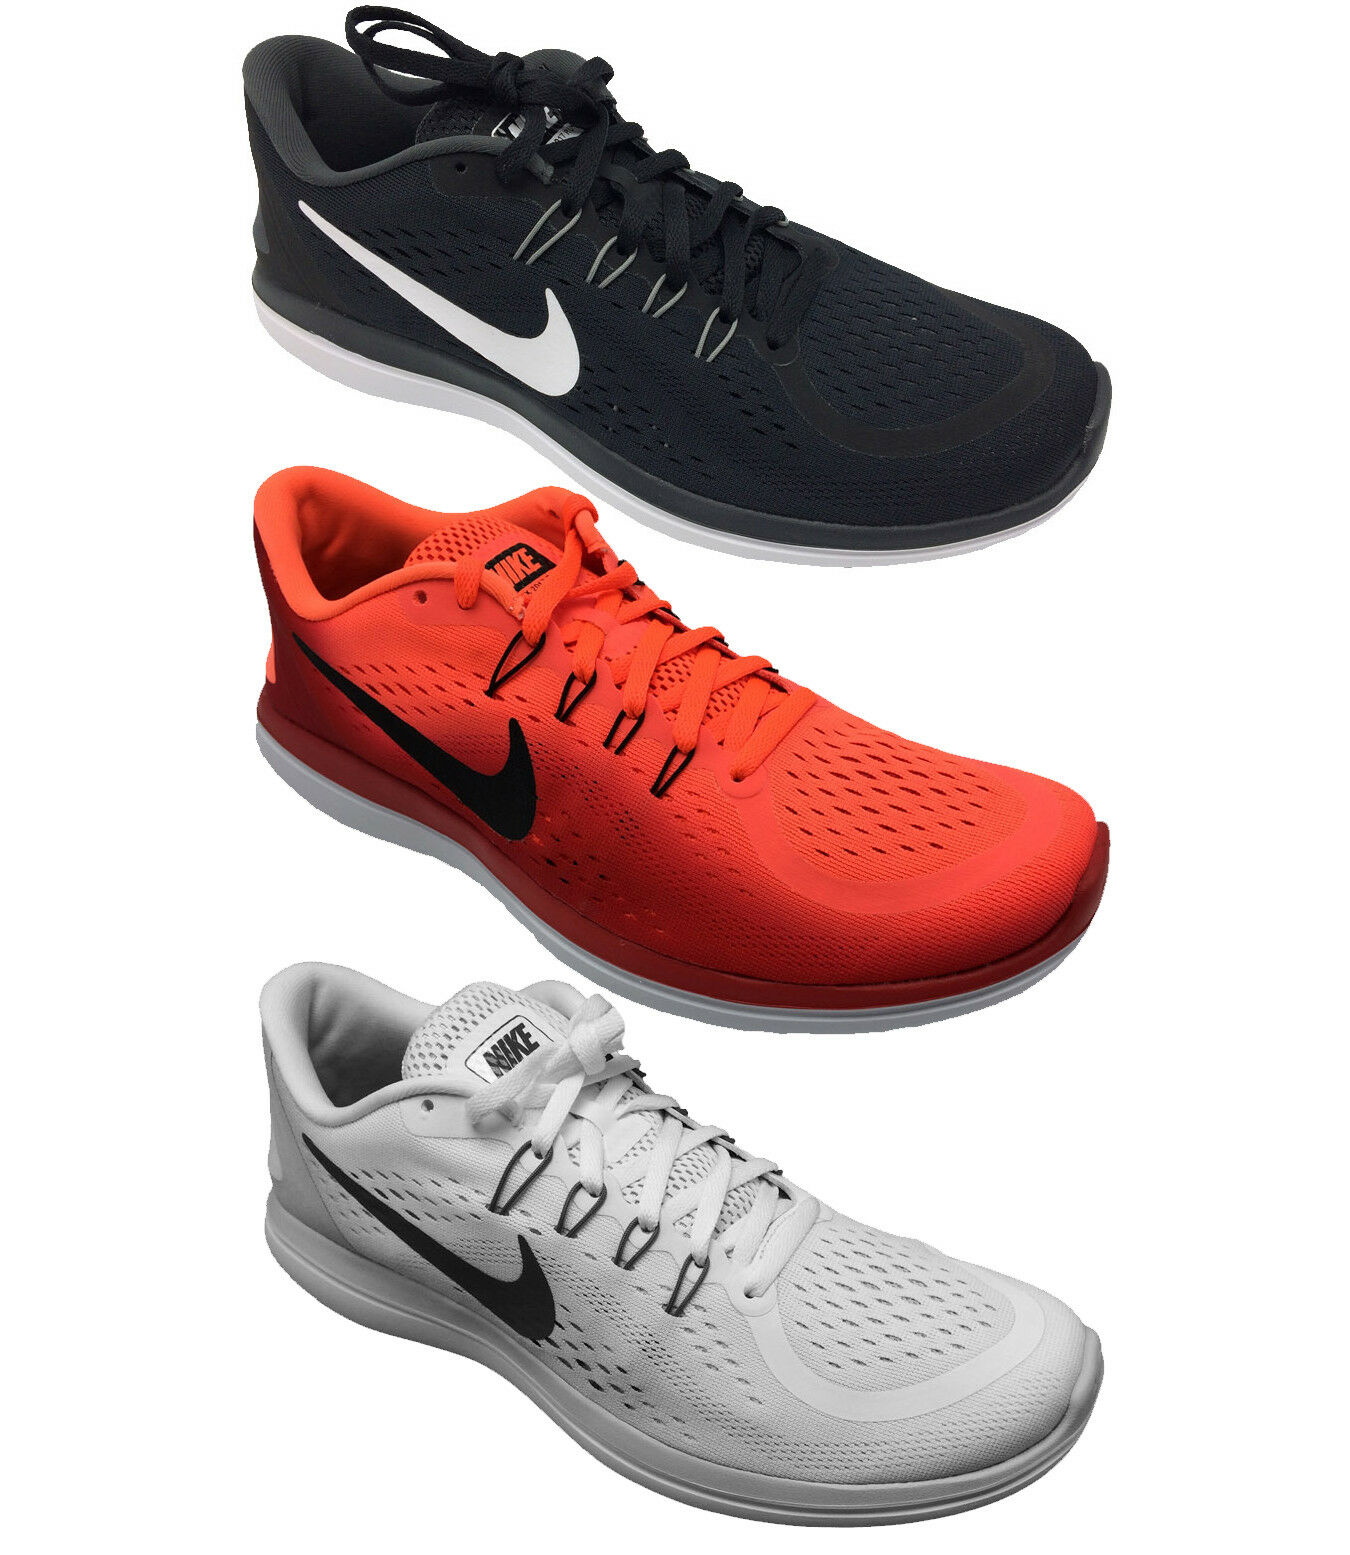 adbf68c2d0c Nike Flex 2017 RN Men s Men s Men s sneakers - 3 colors to choose 898457  2cab0c